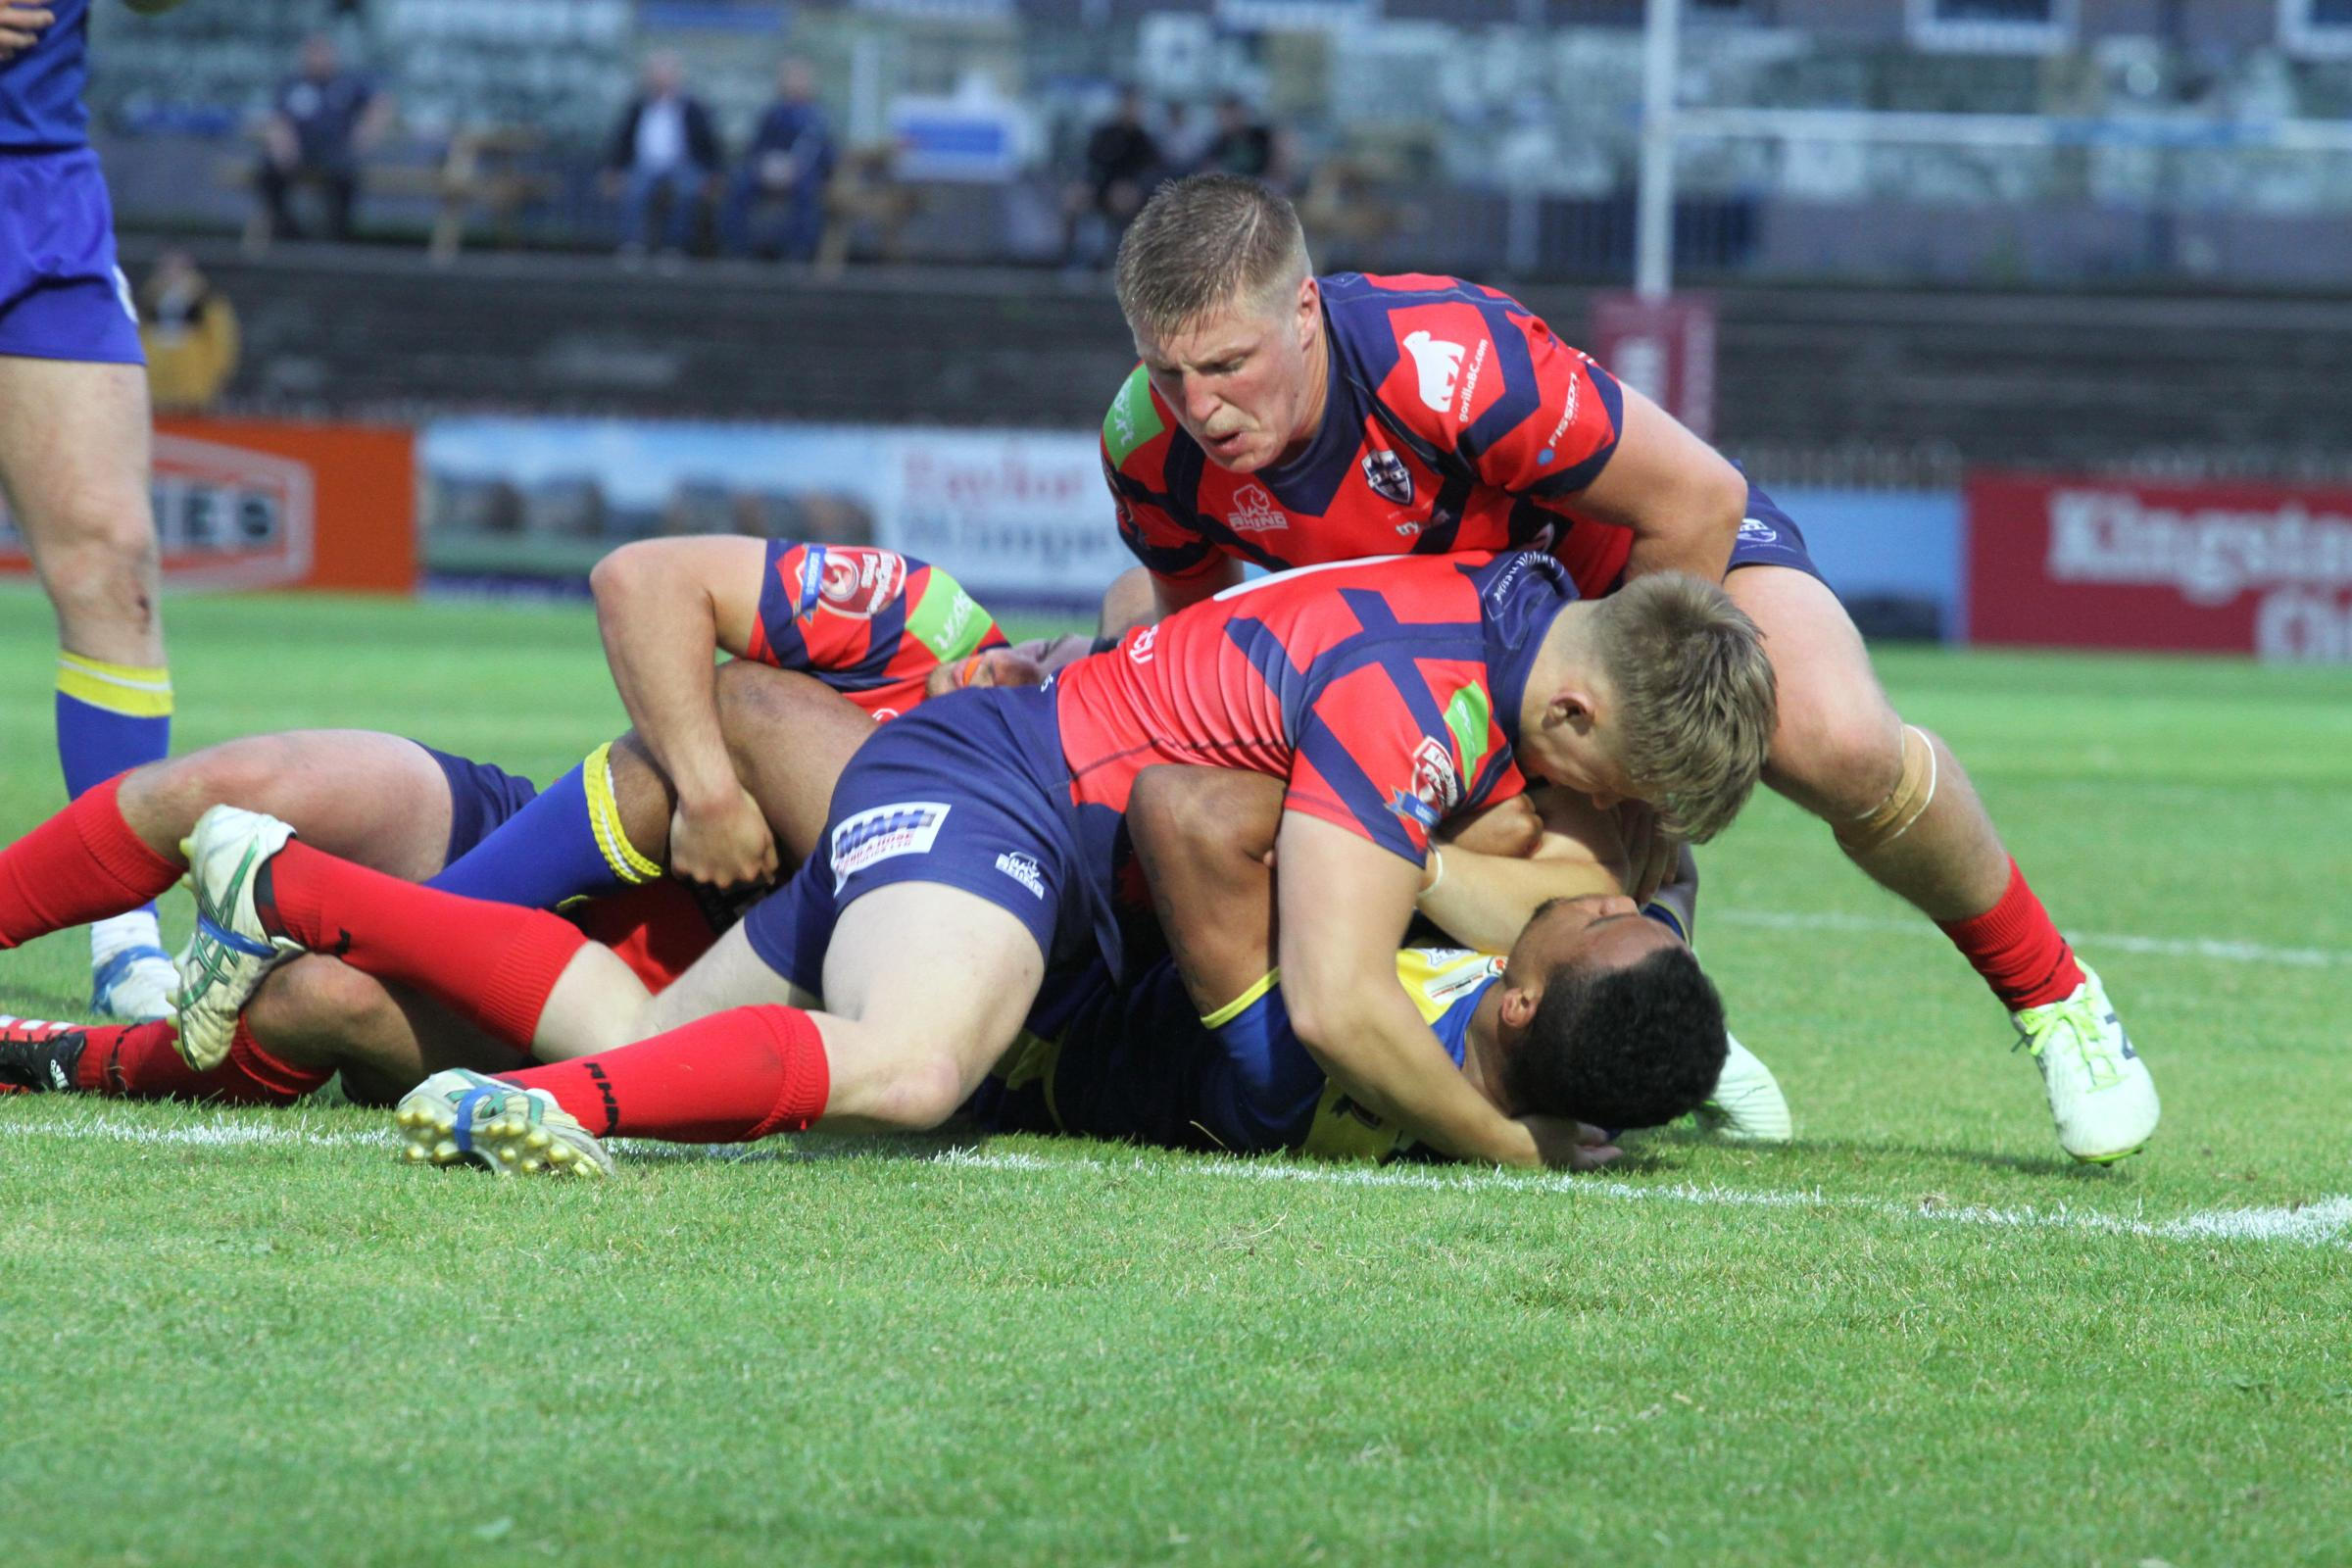 HARD WORK: Oxford RL do all they can to stop Doncaster in their tracks during a 34-16 defeat in Kingstone Press League One Picture: Simon Hall